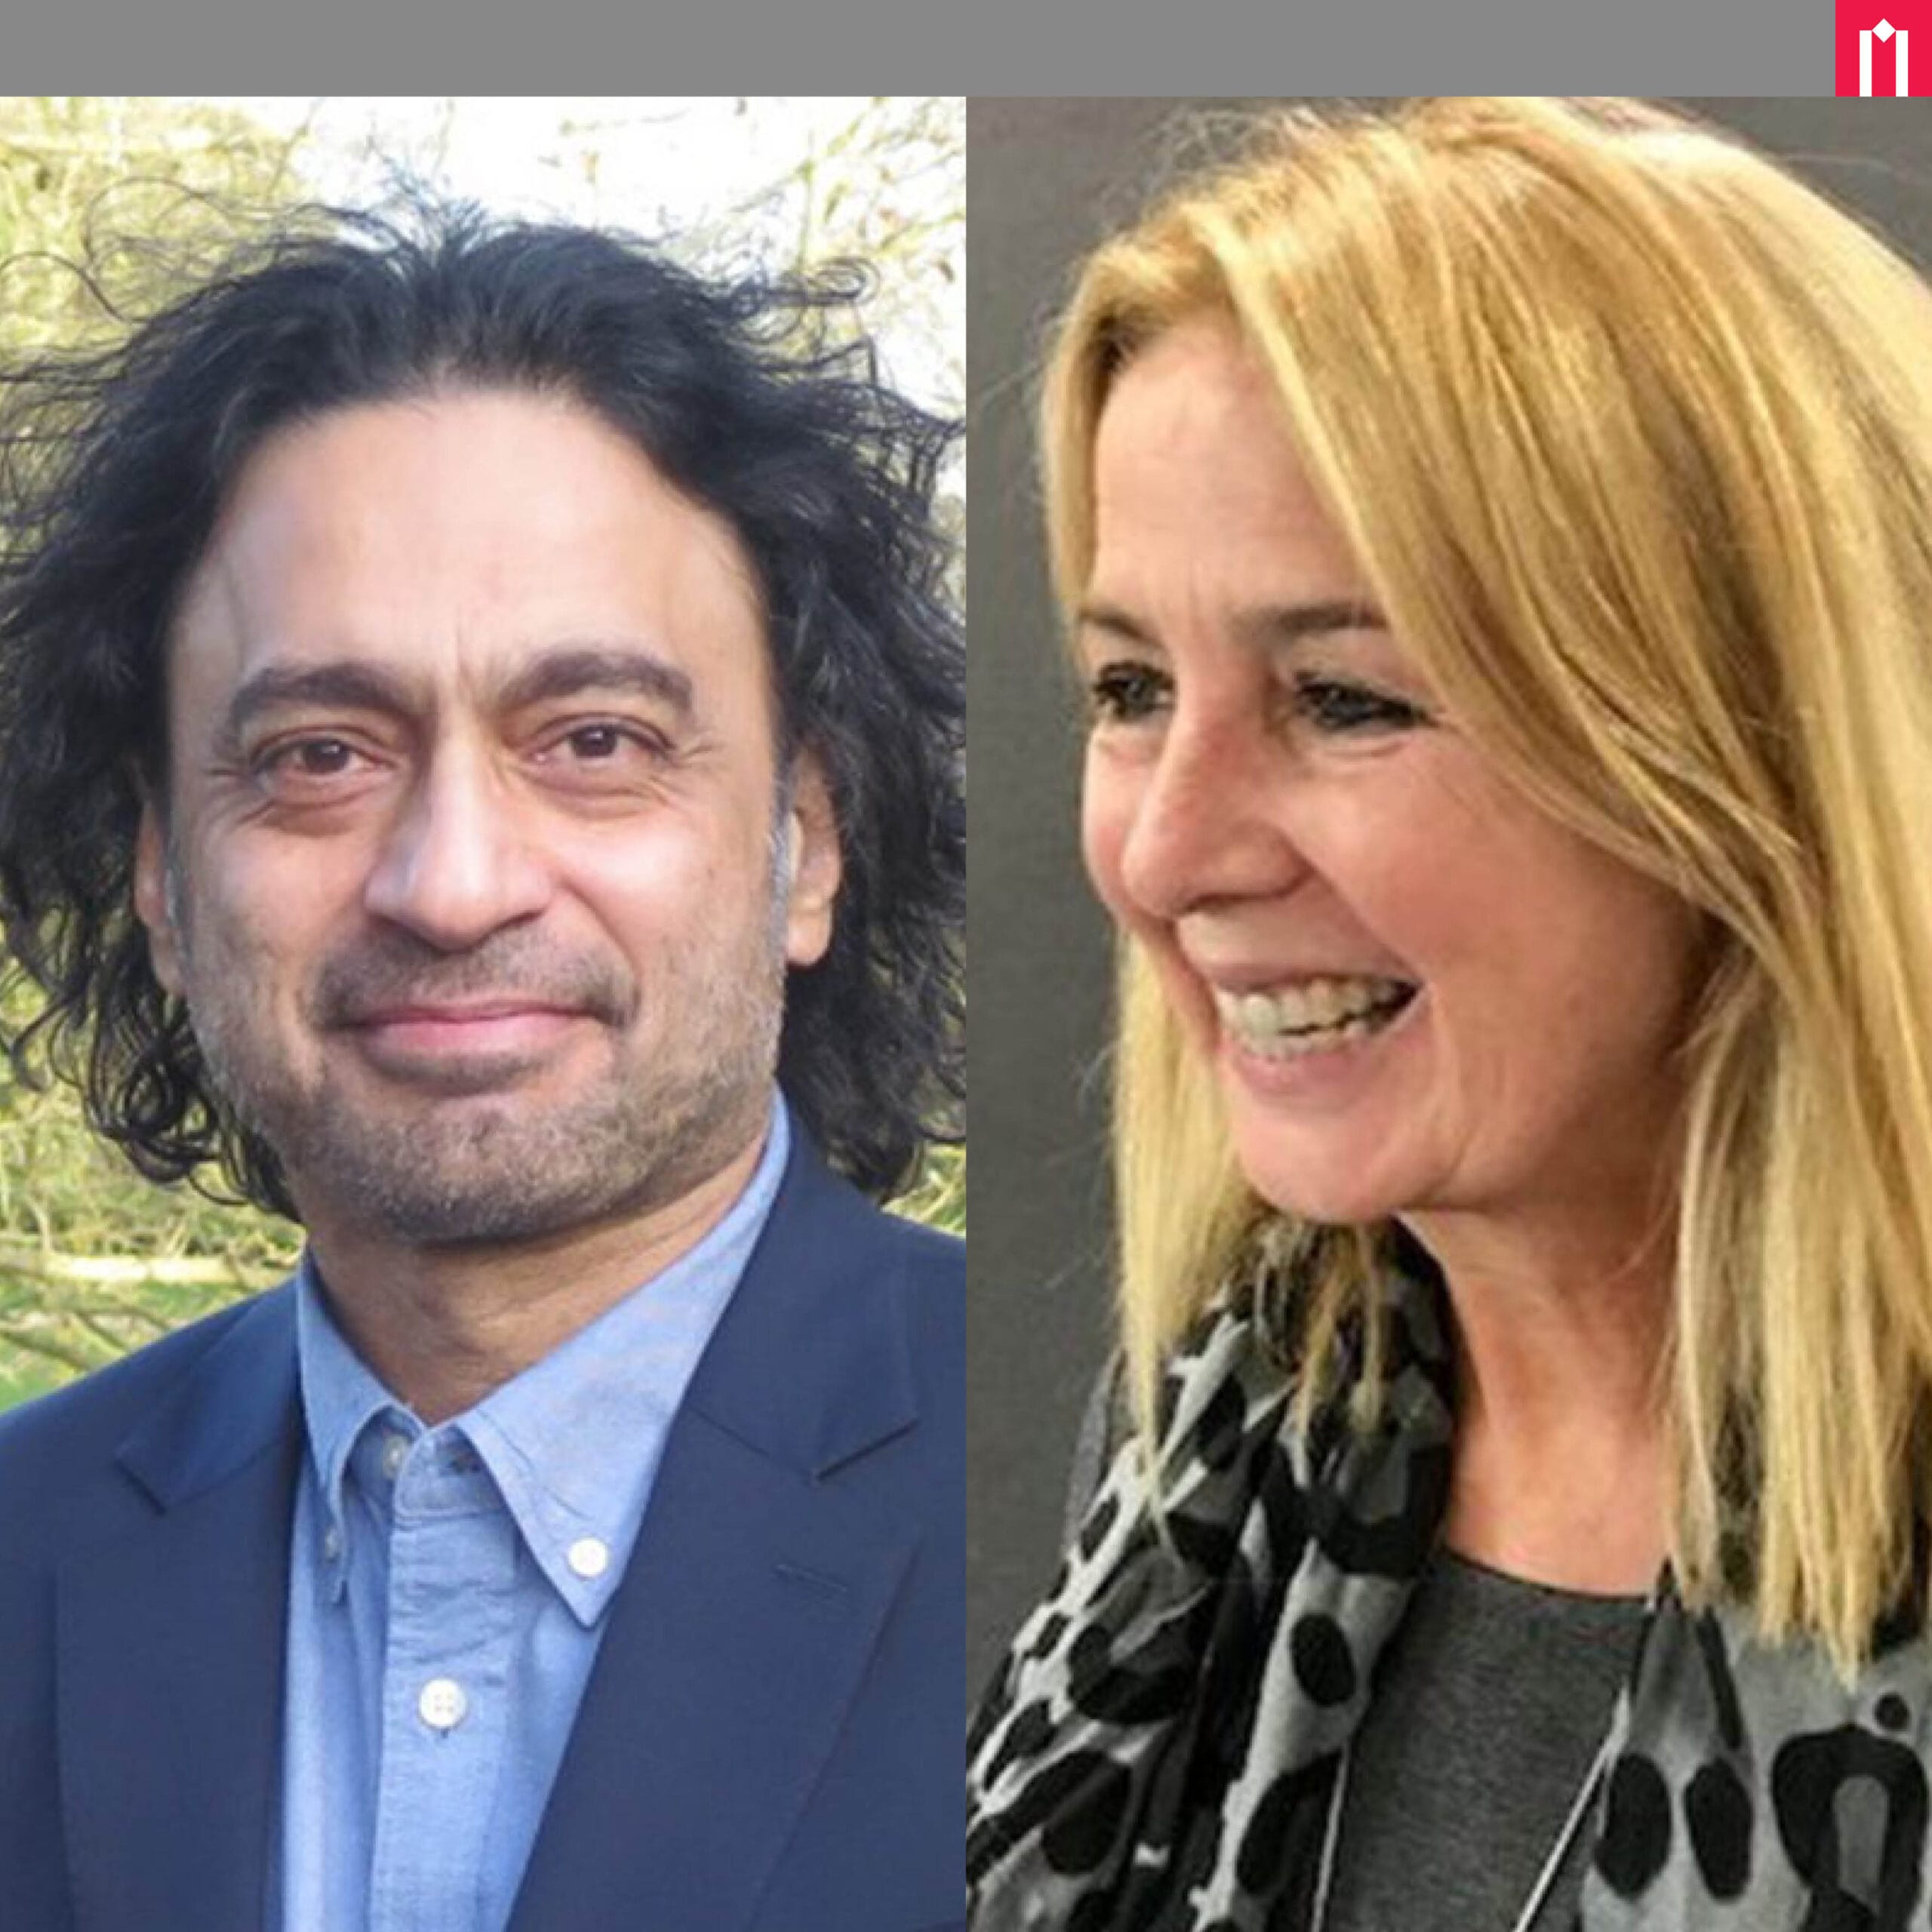 Picture of Sudhanshu Palsule and Ruth Berry at Moller Institute